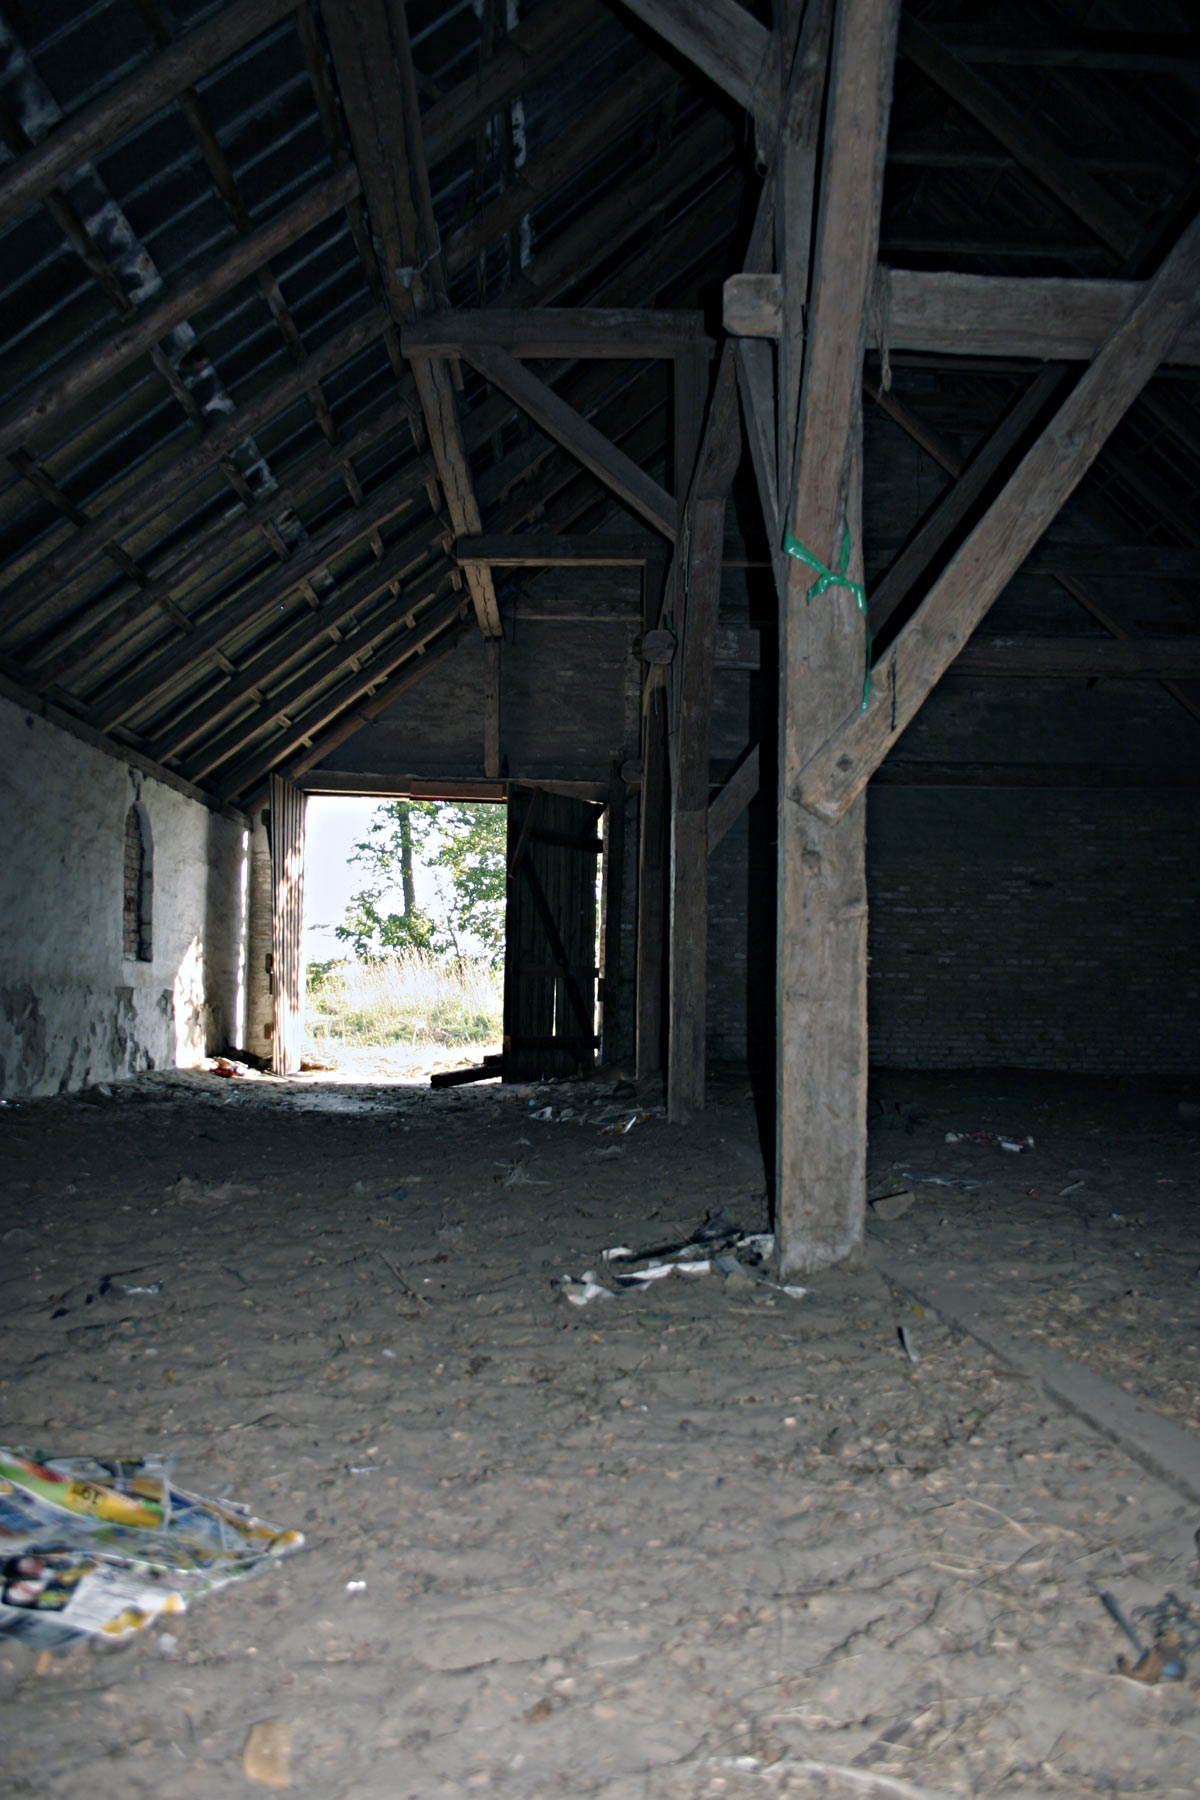 Abandoned building, House, Inside, Light, Scary, HQ Photo